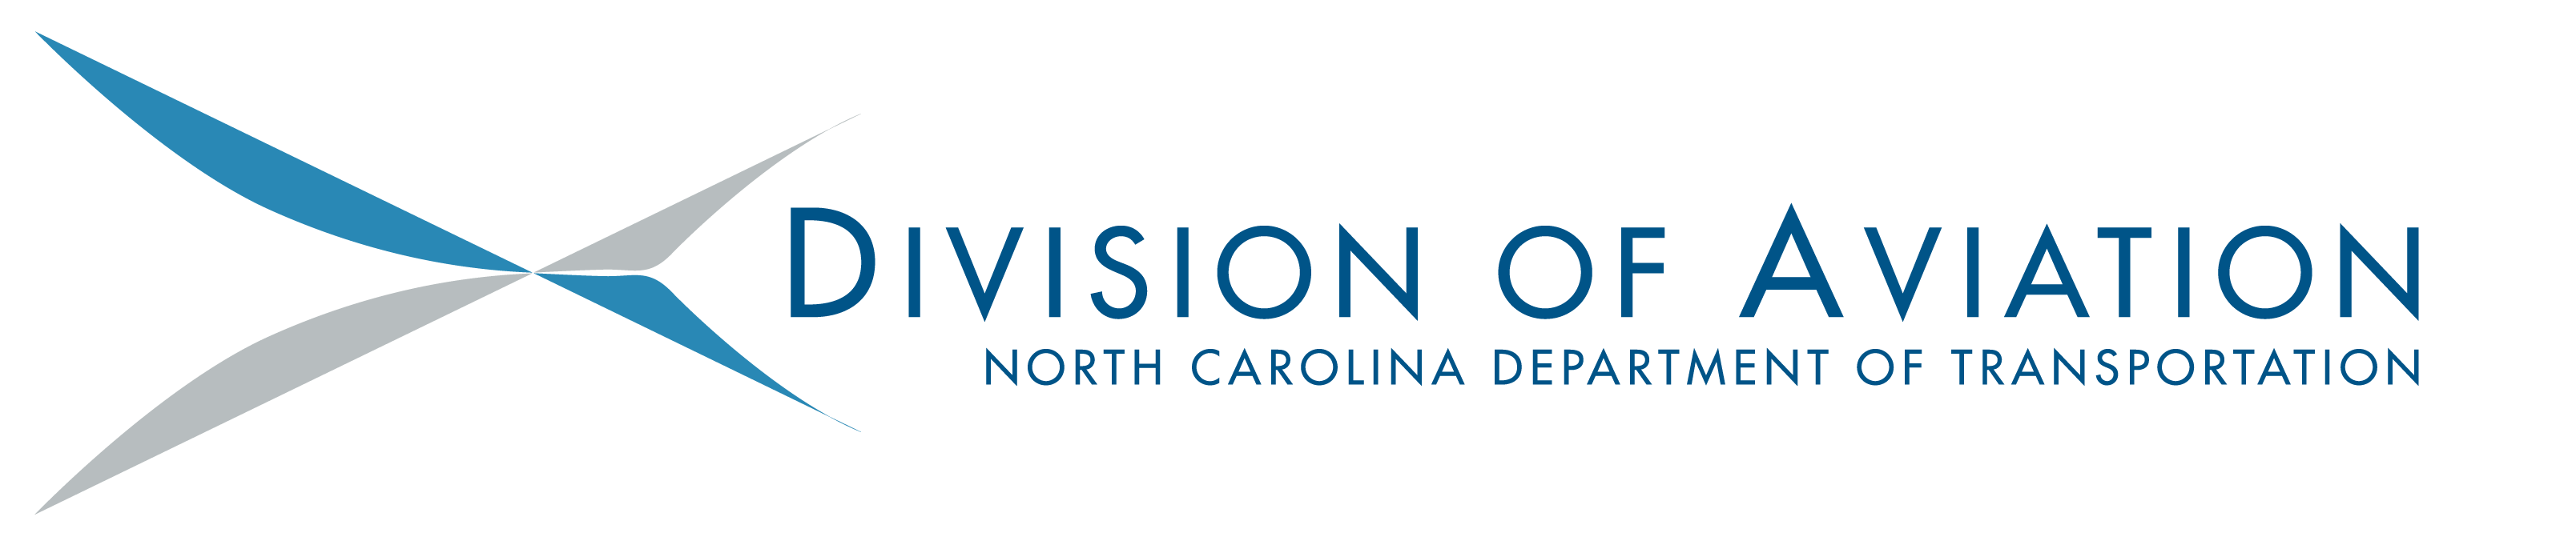 NCDOT Department of Aviation logo in color